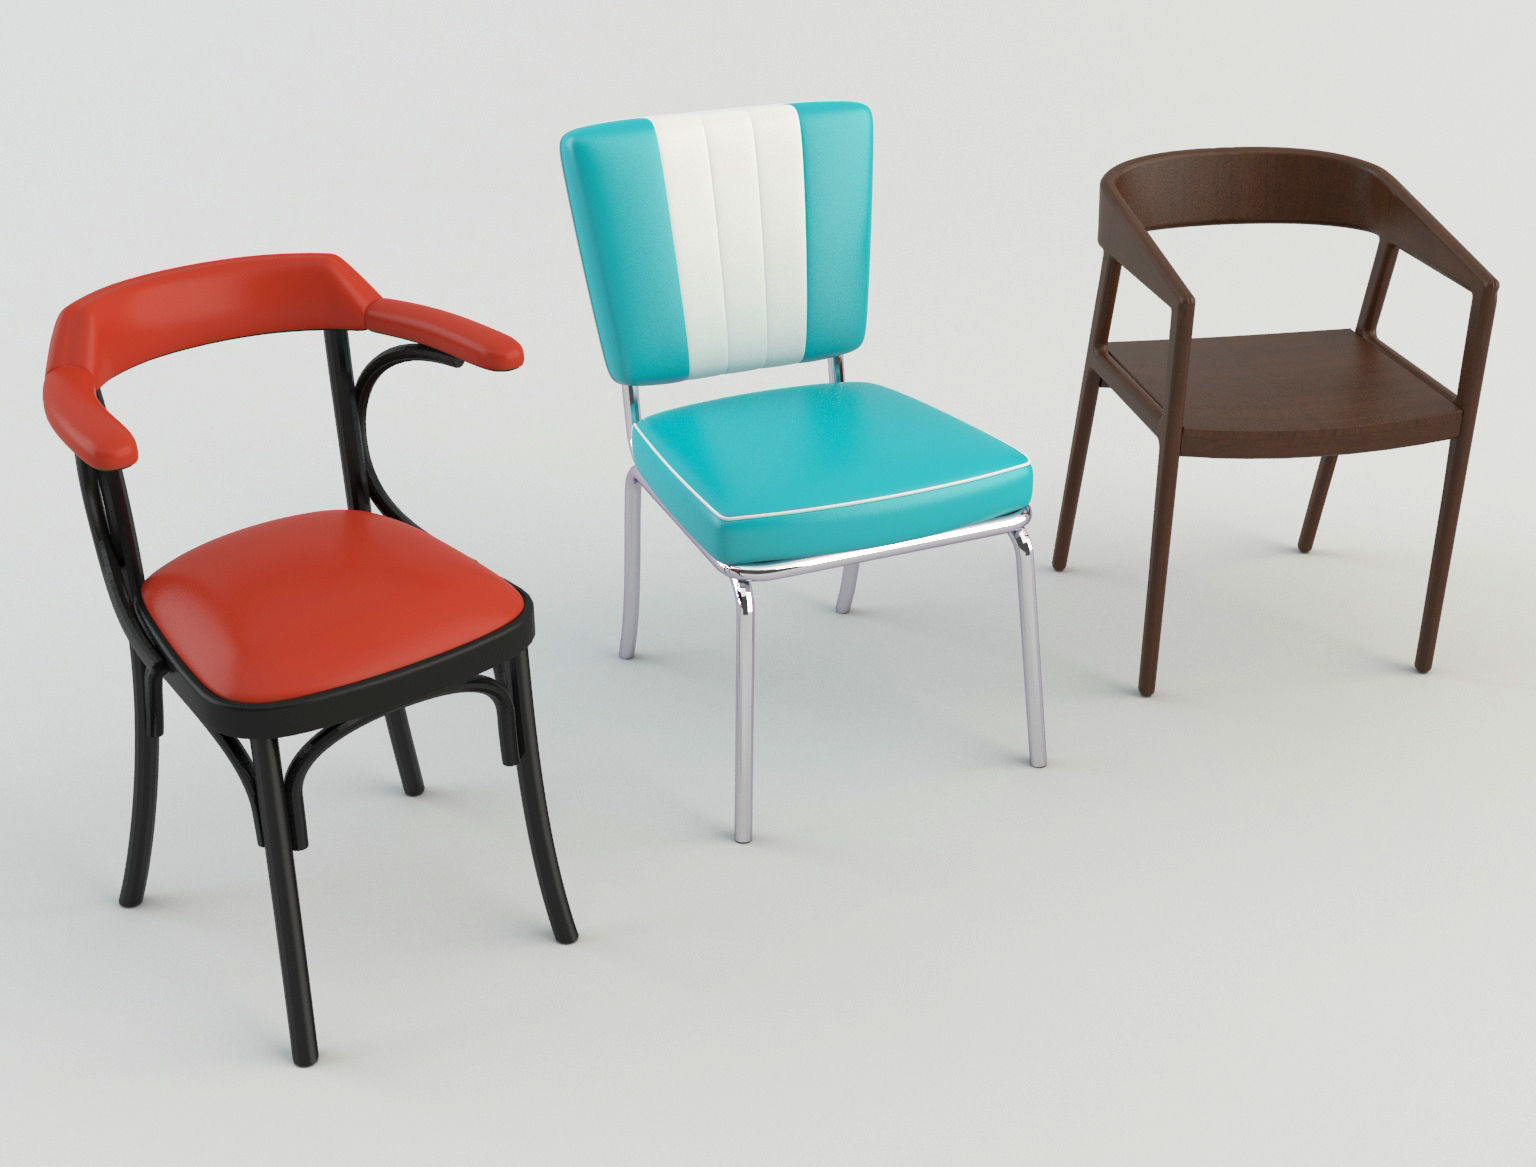 Cafeteria Chairs Bar Cafeteria Restaurant Chairs 3 3d Model